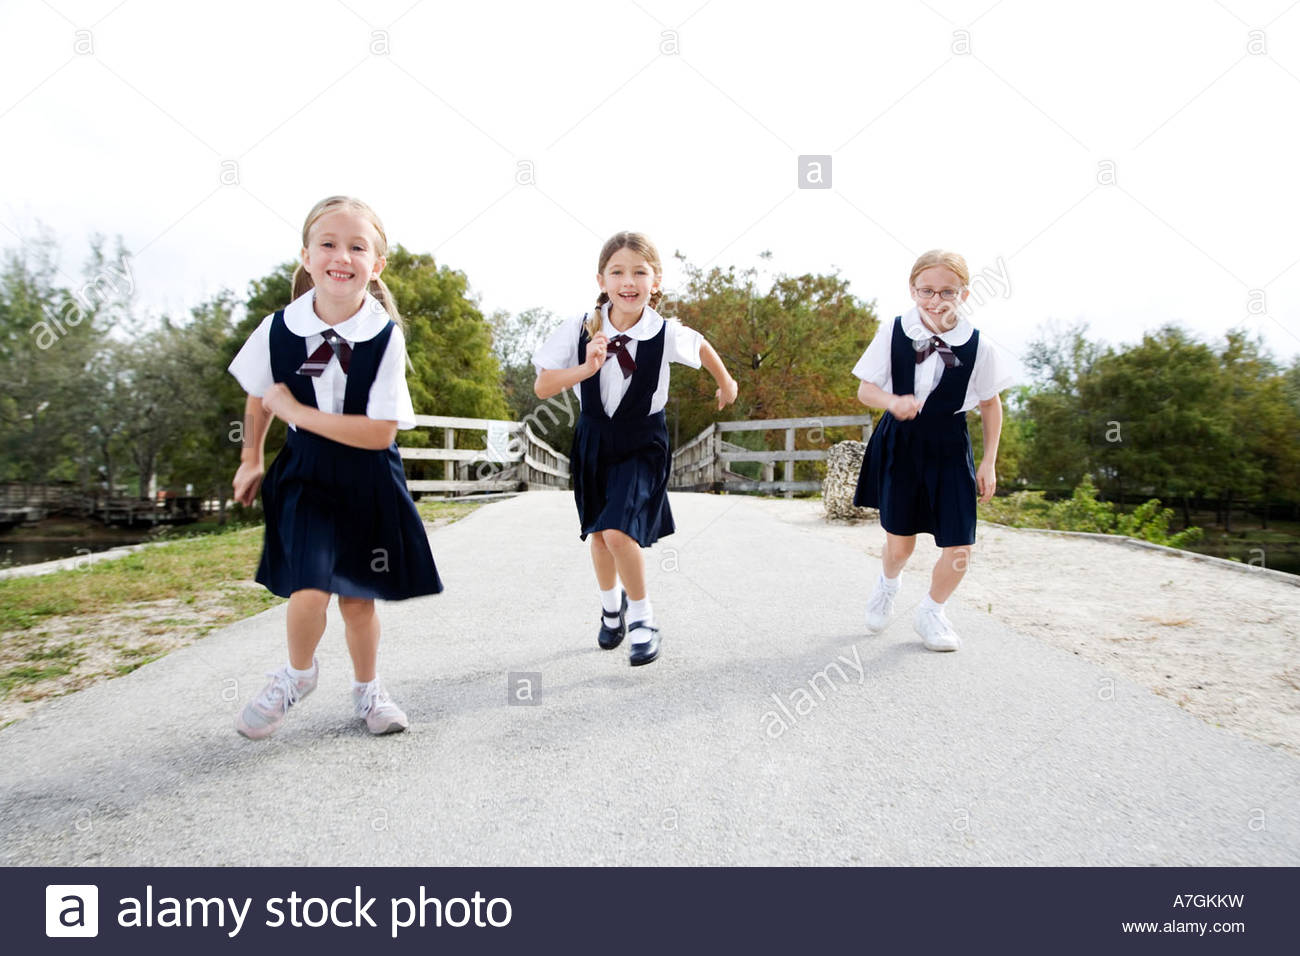 Three schoolgirls running down a road - Stock Image